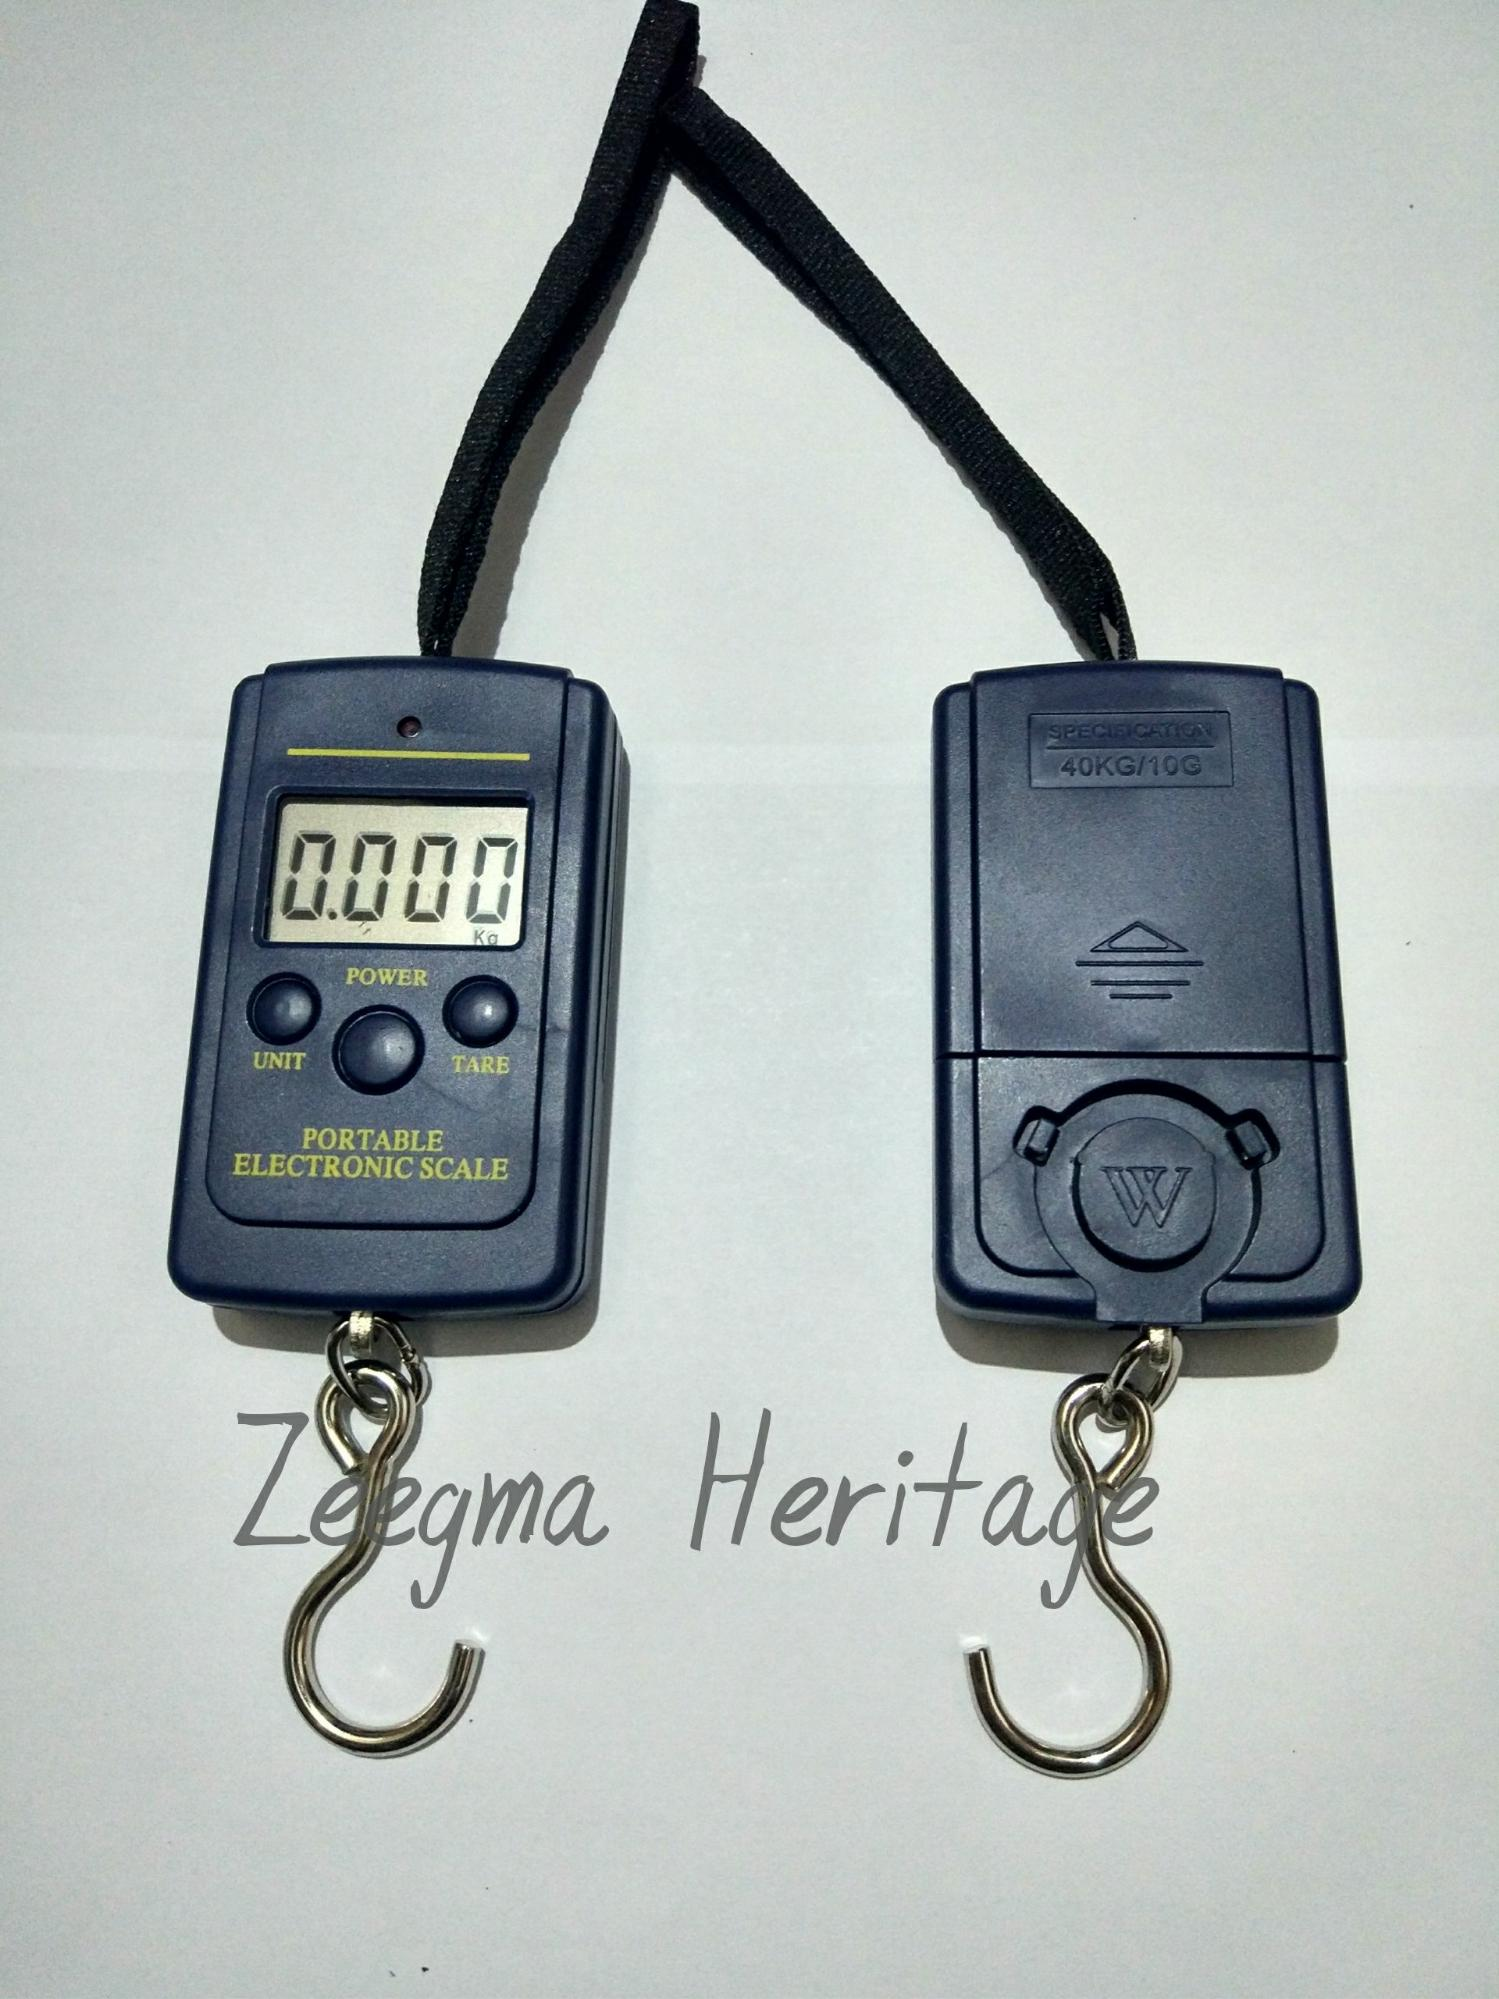 Timbangan Gantung Digital Scale Portable Elektronik 40 Kg